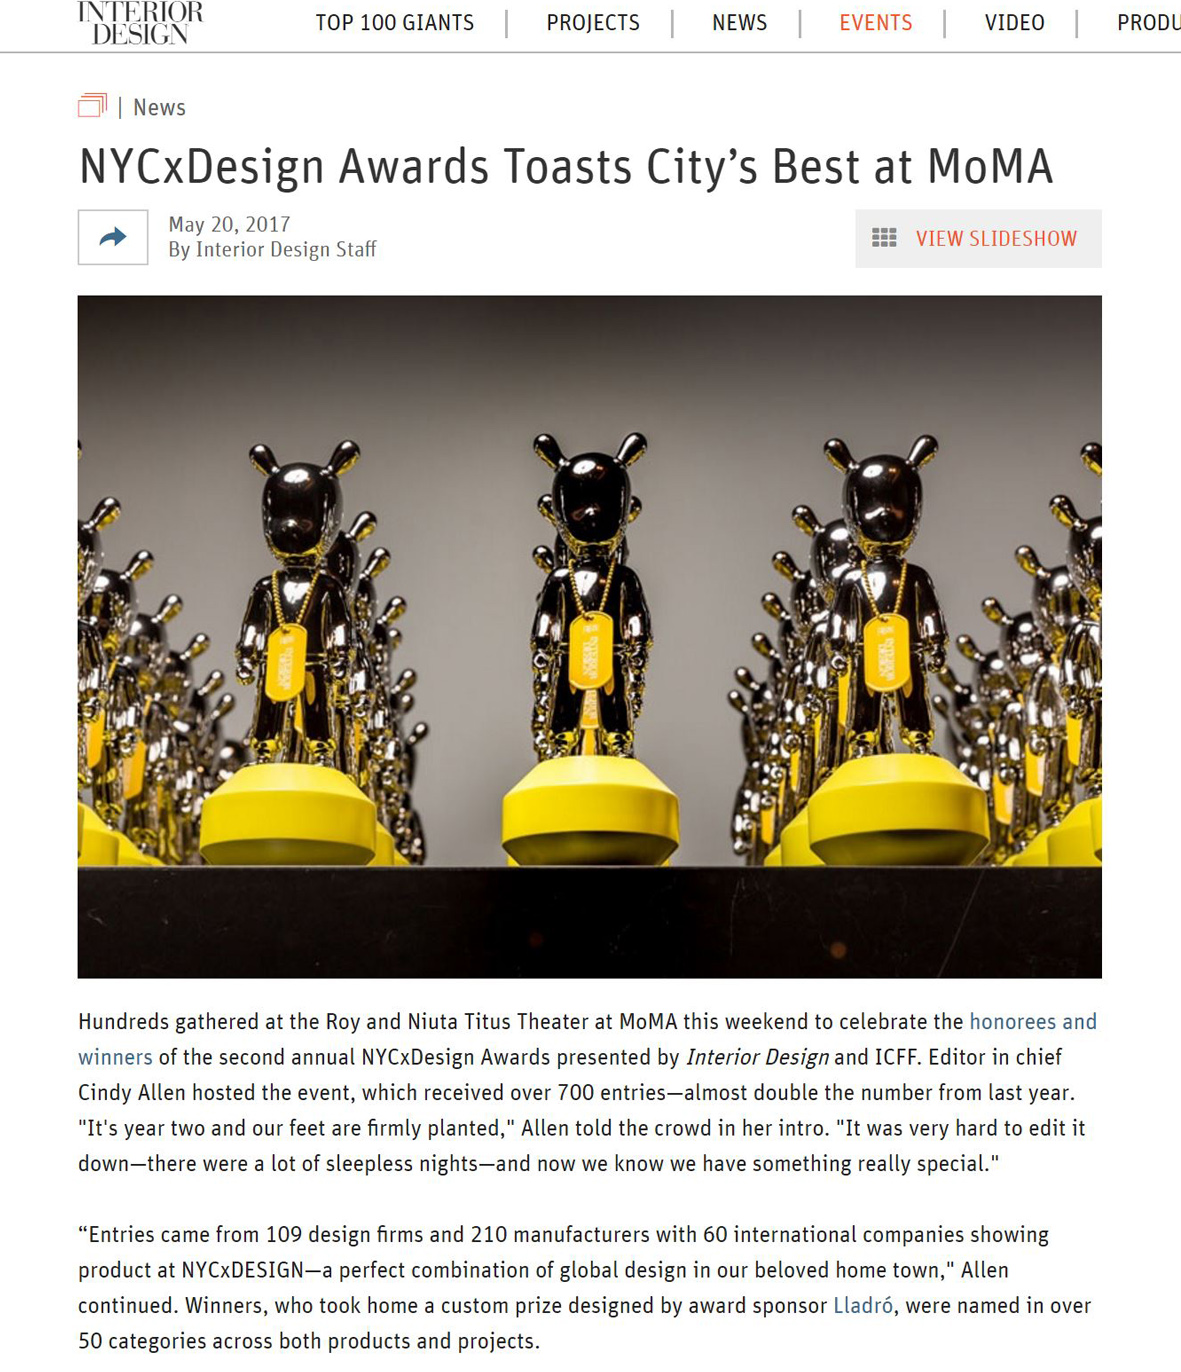 Interior Design: NYCxDesign Awards Toasts City's Best at MoMA including Kaynemaile